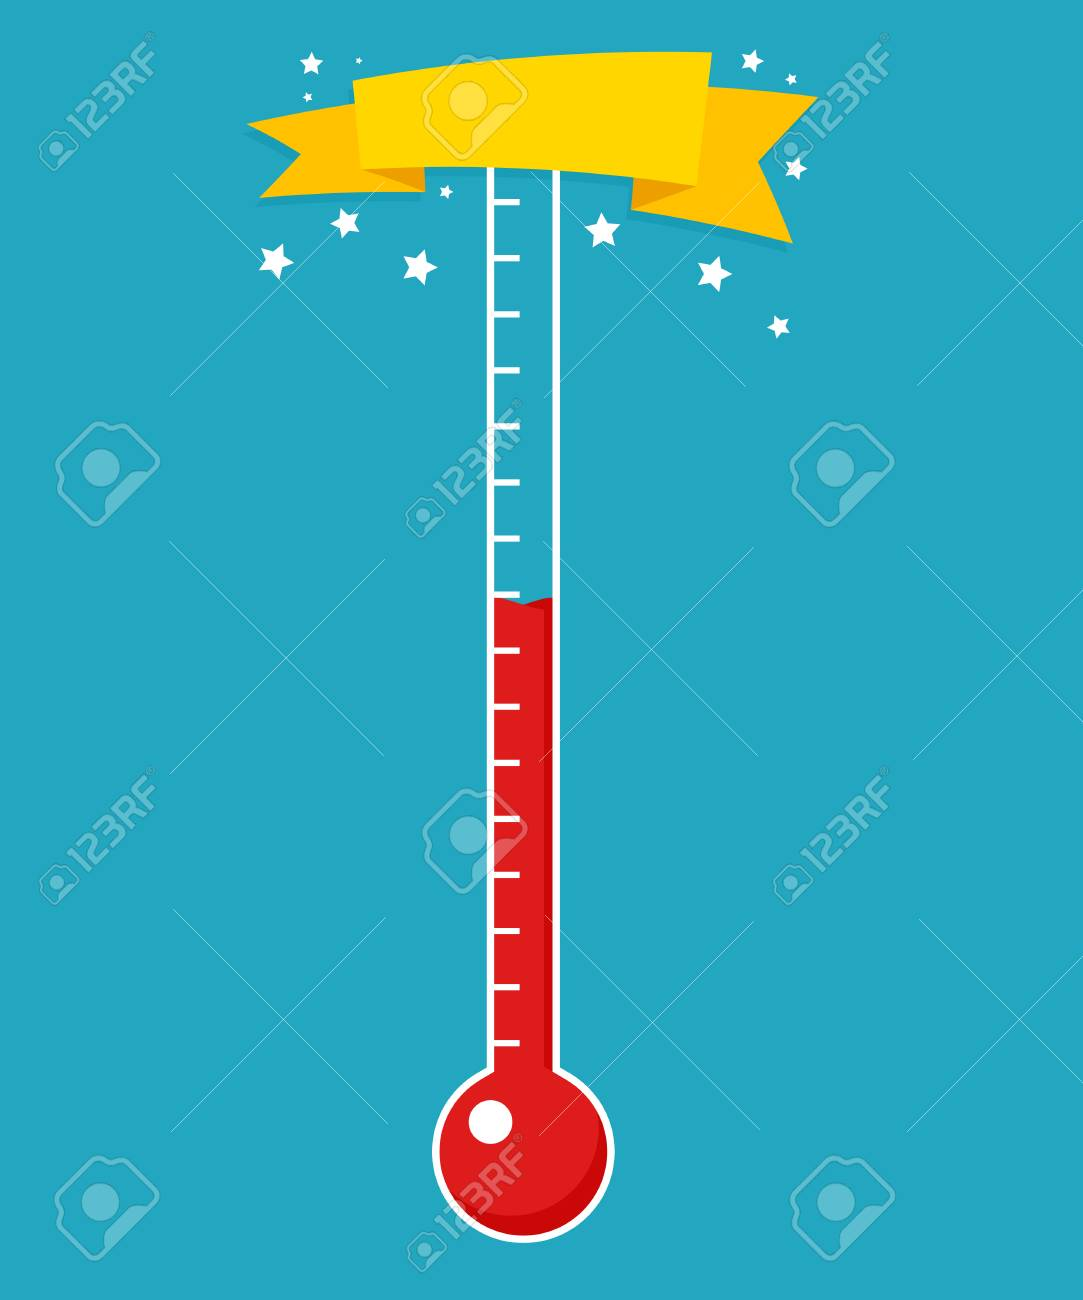 Fundraising thermometer template isolated on a blue background - 104890474